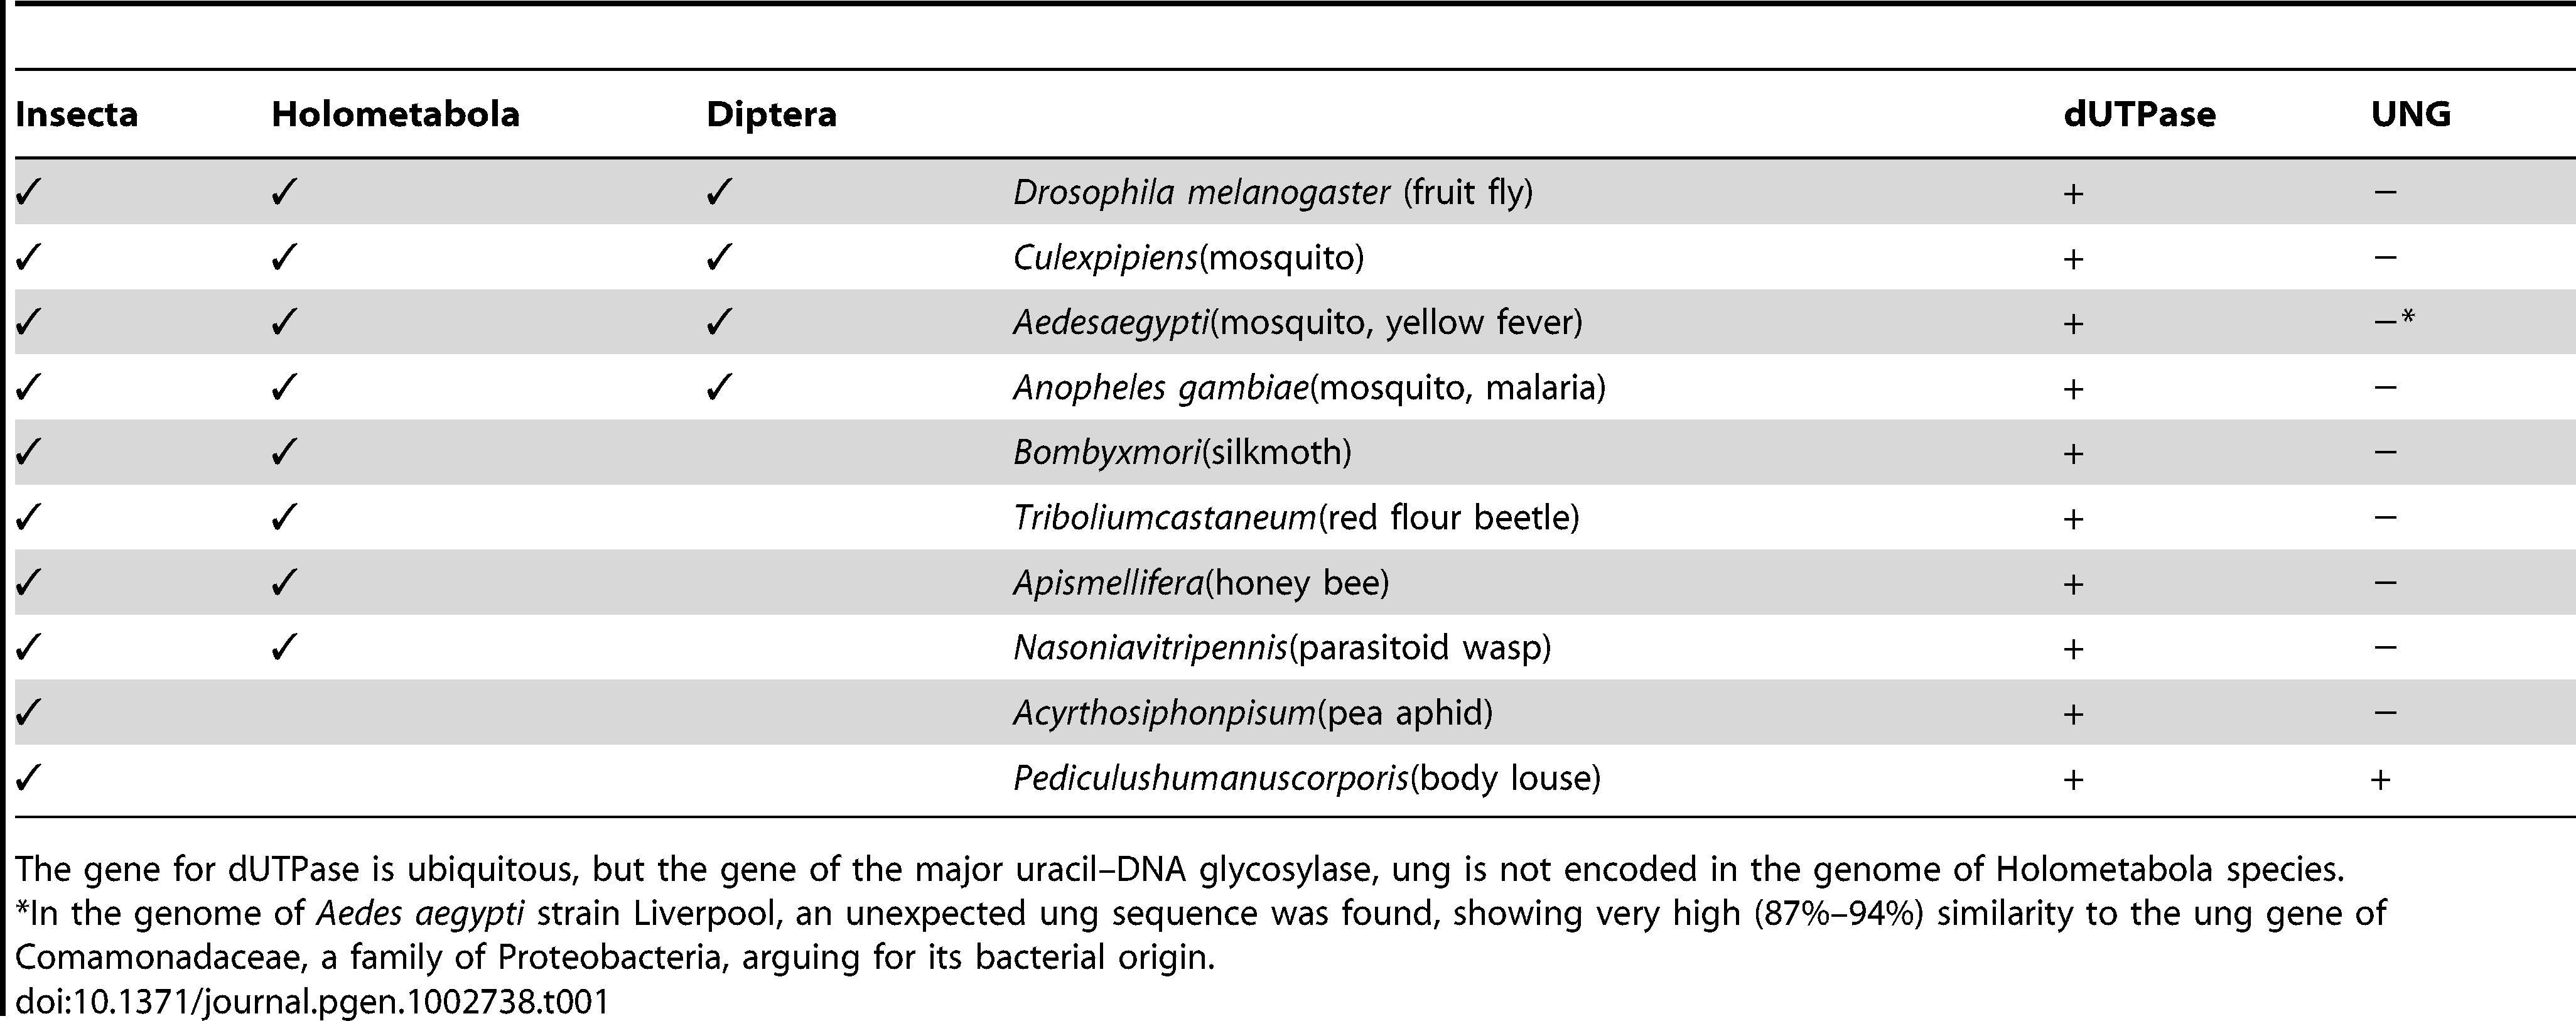 Occurrence of genes encoding dUTPase and UNG in different insects.